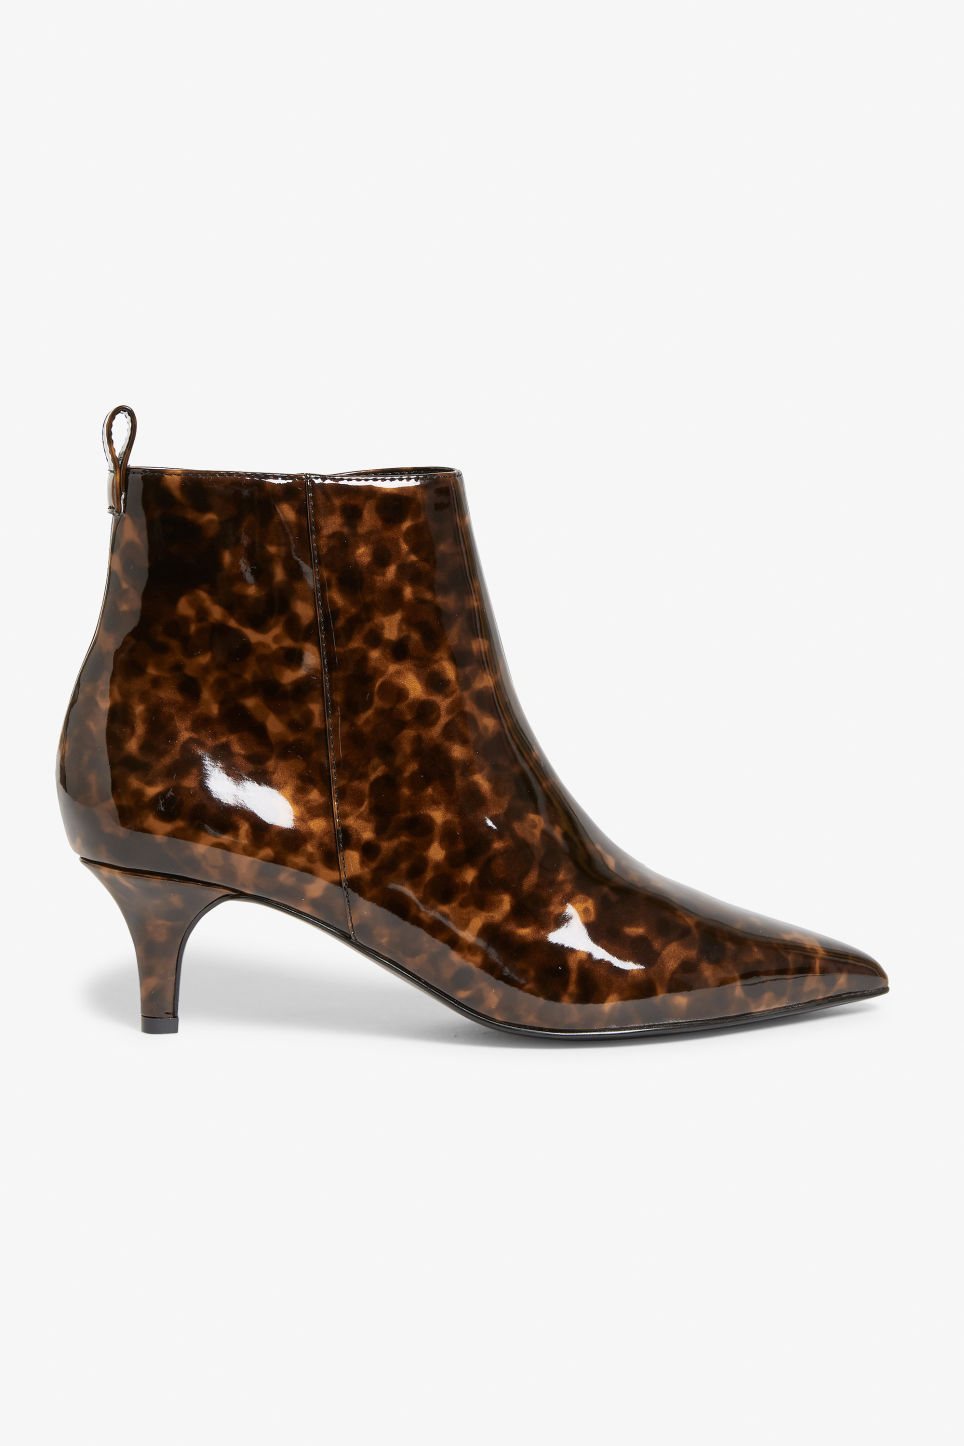 Detailed image of Monki kitten heel boots in brown